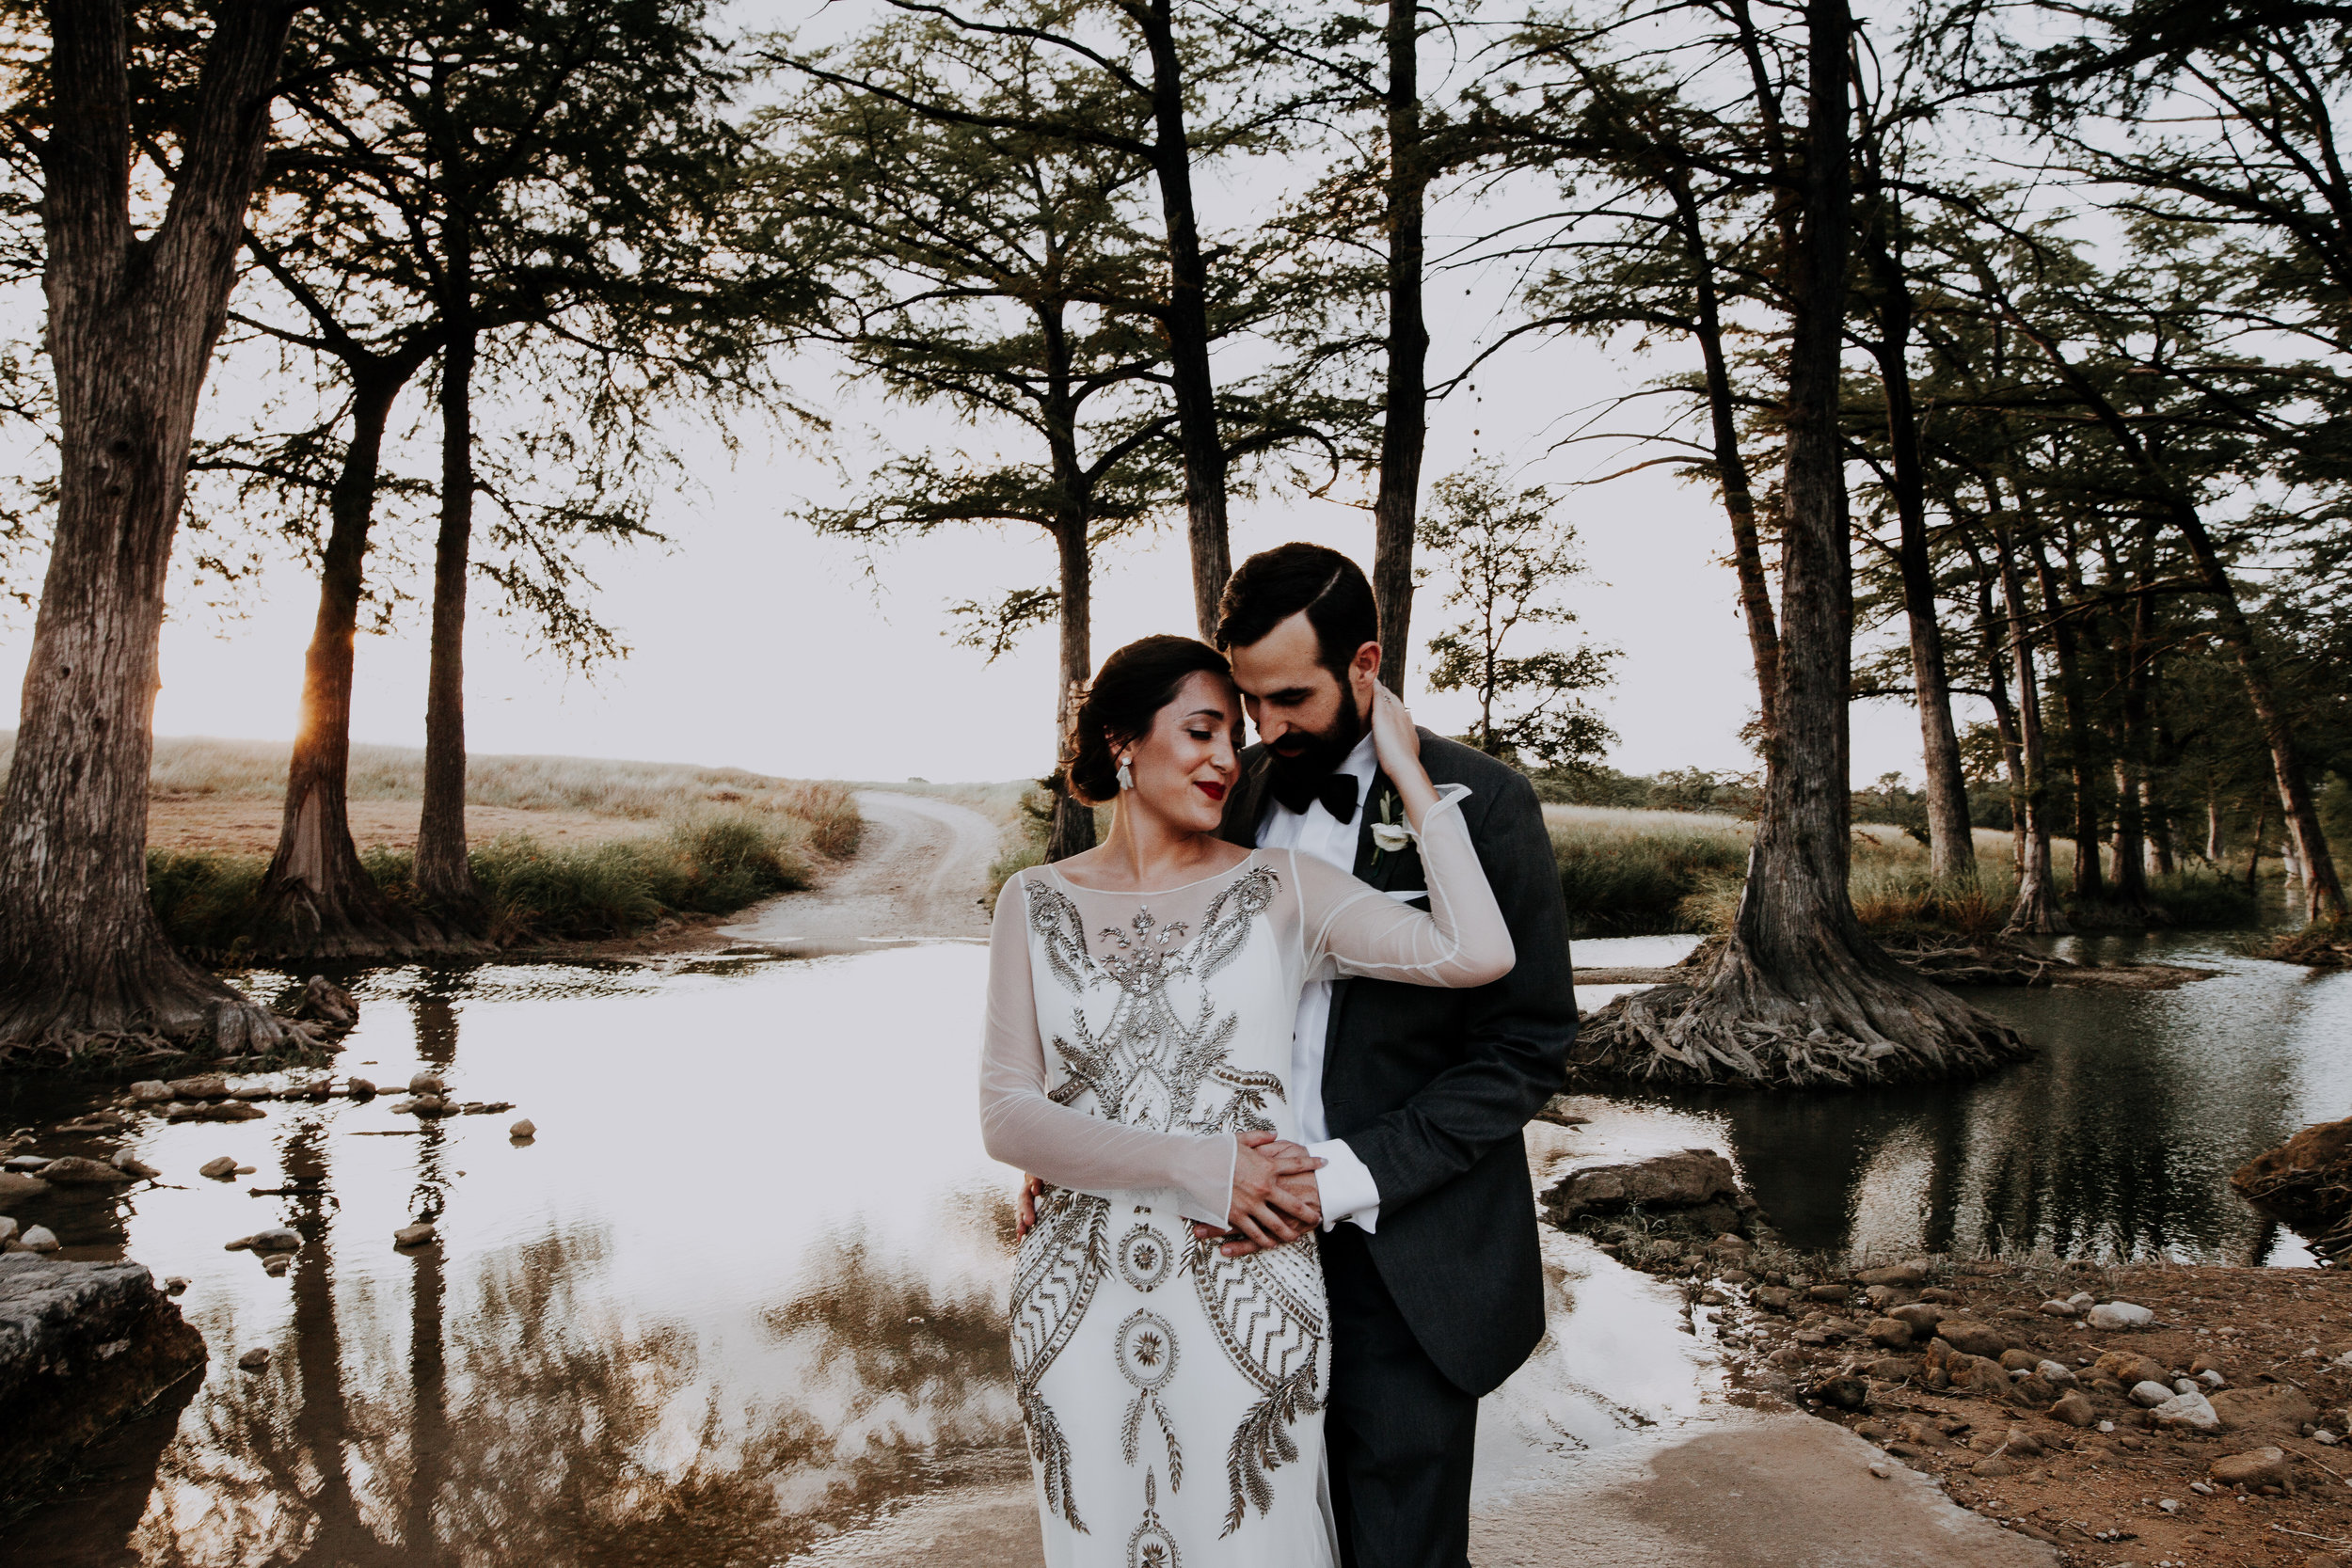 wedding special - $250 off any wedding package that is booked this month! Reach out to me for more details!